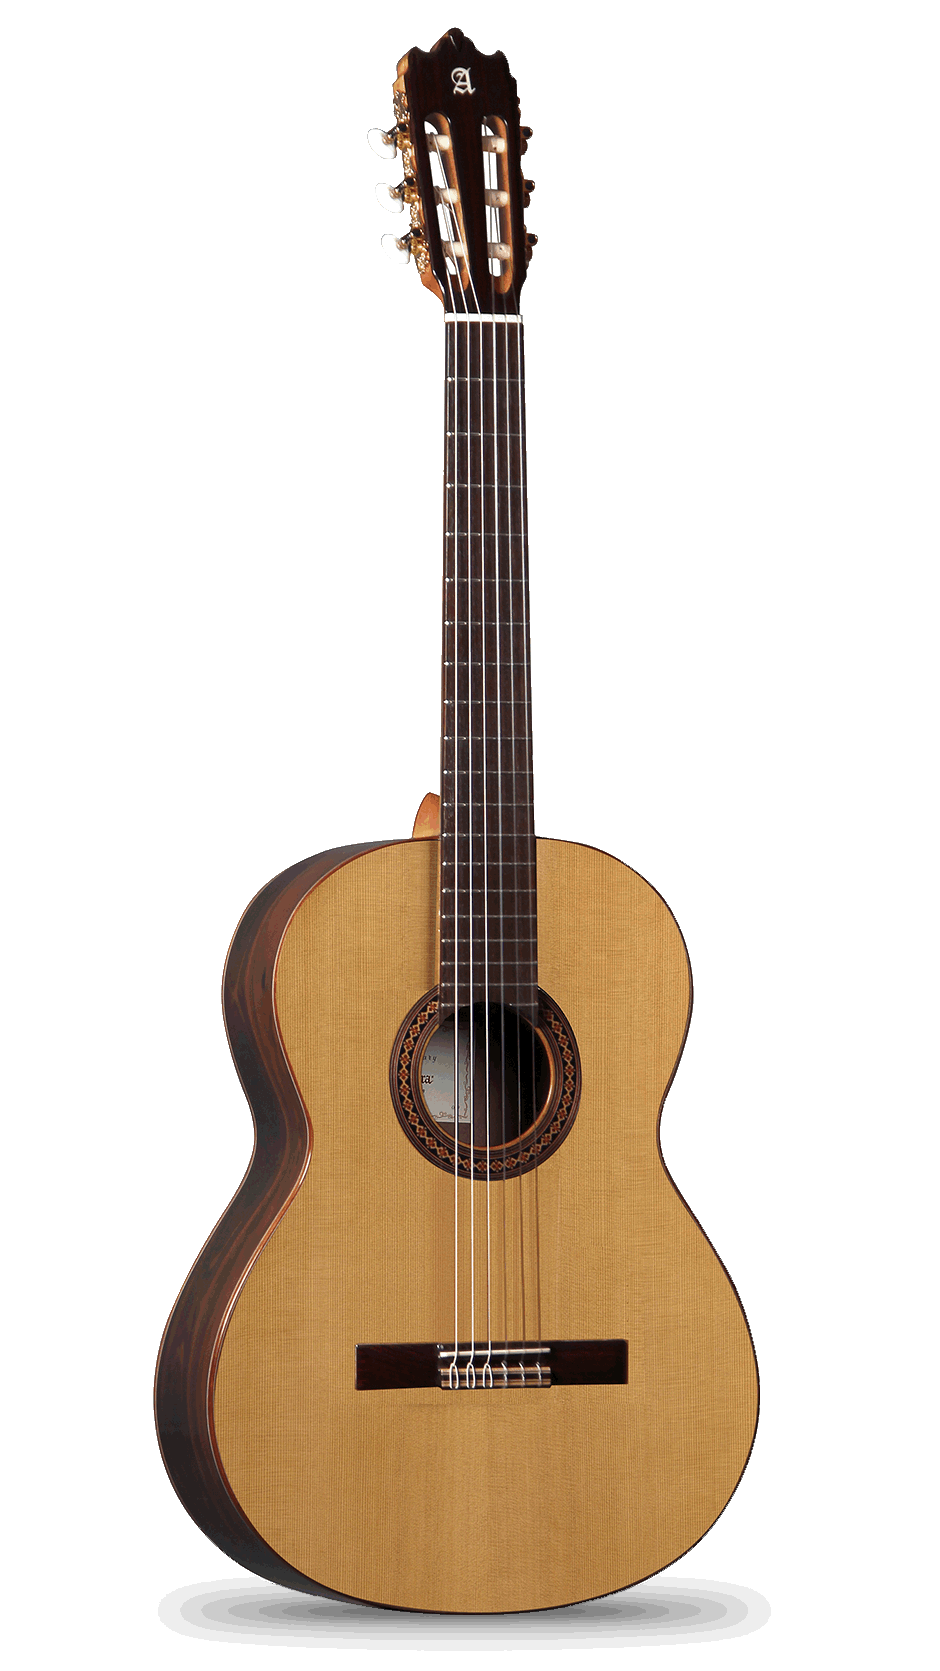 Classical Alhambra Guitars student